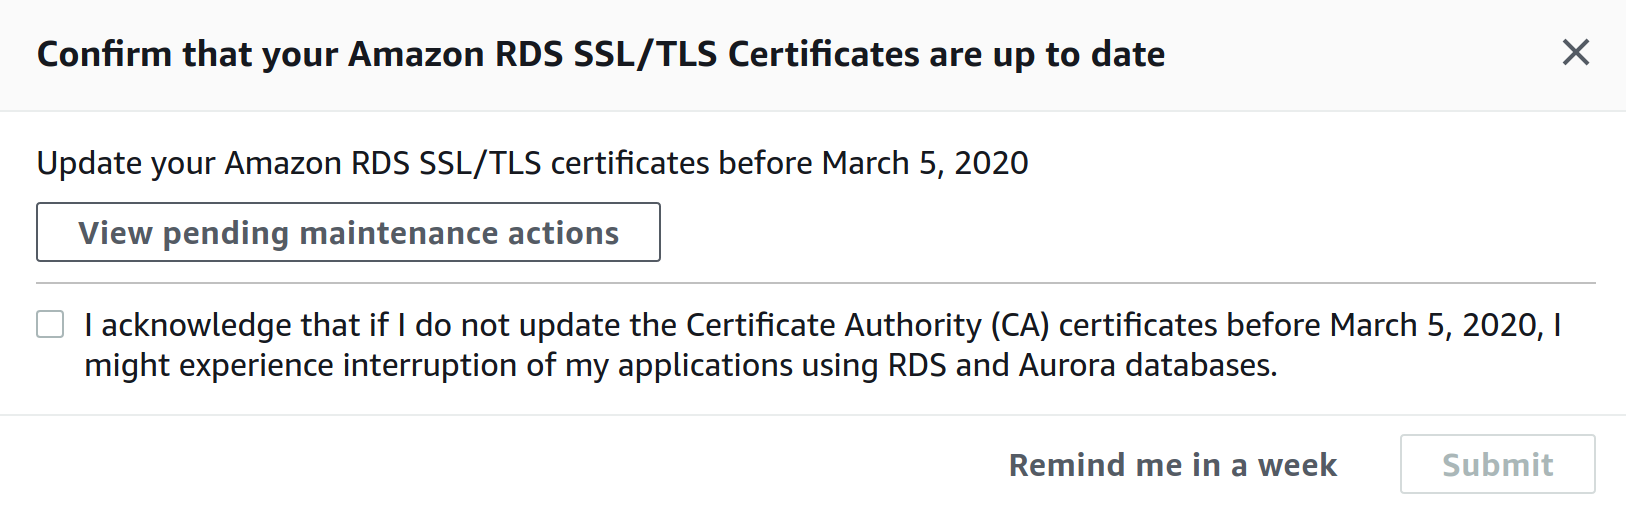 """Screenshot of on-screen alert, titled """"Confirm that your Amazon RDS SSL/TLS Certificates are up to date"""""""